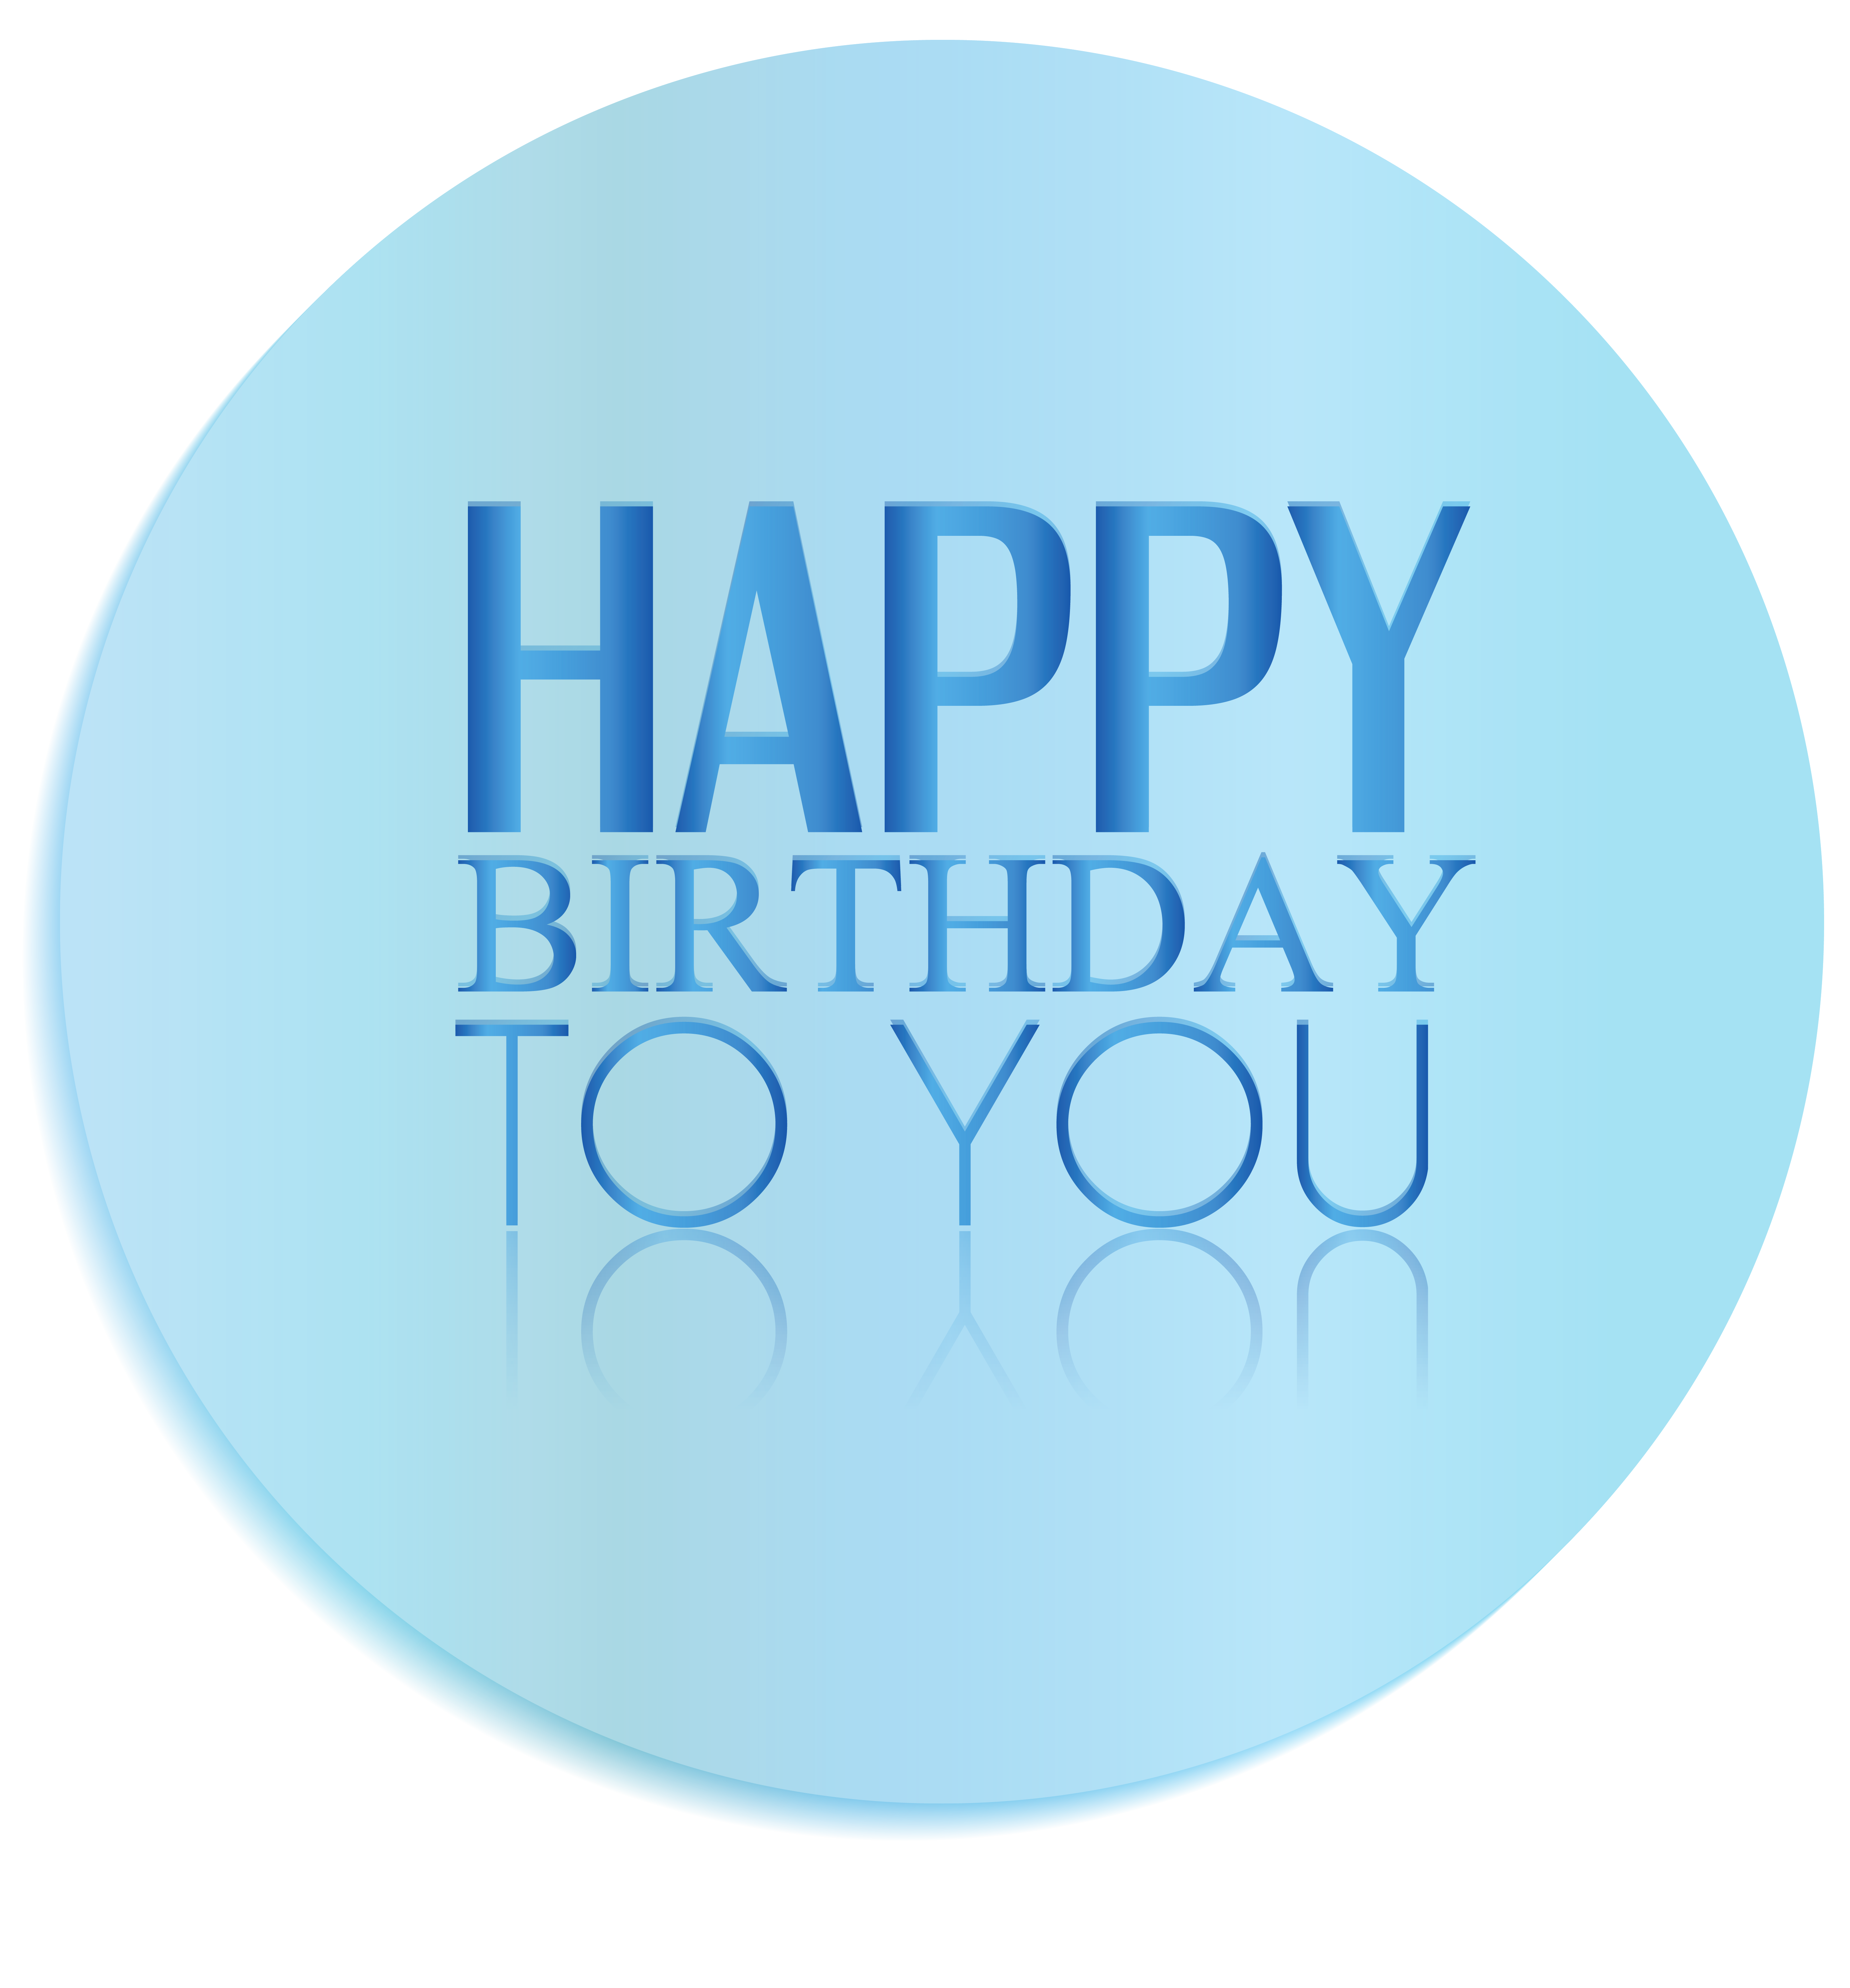 Circle clipart happy birthday. Transparent oval decor png